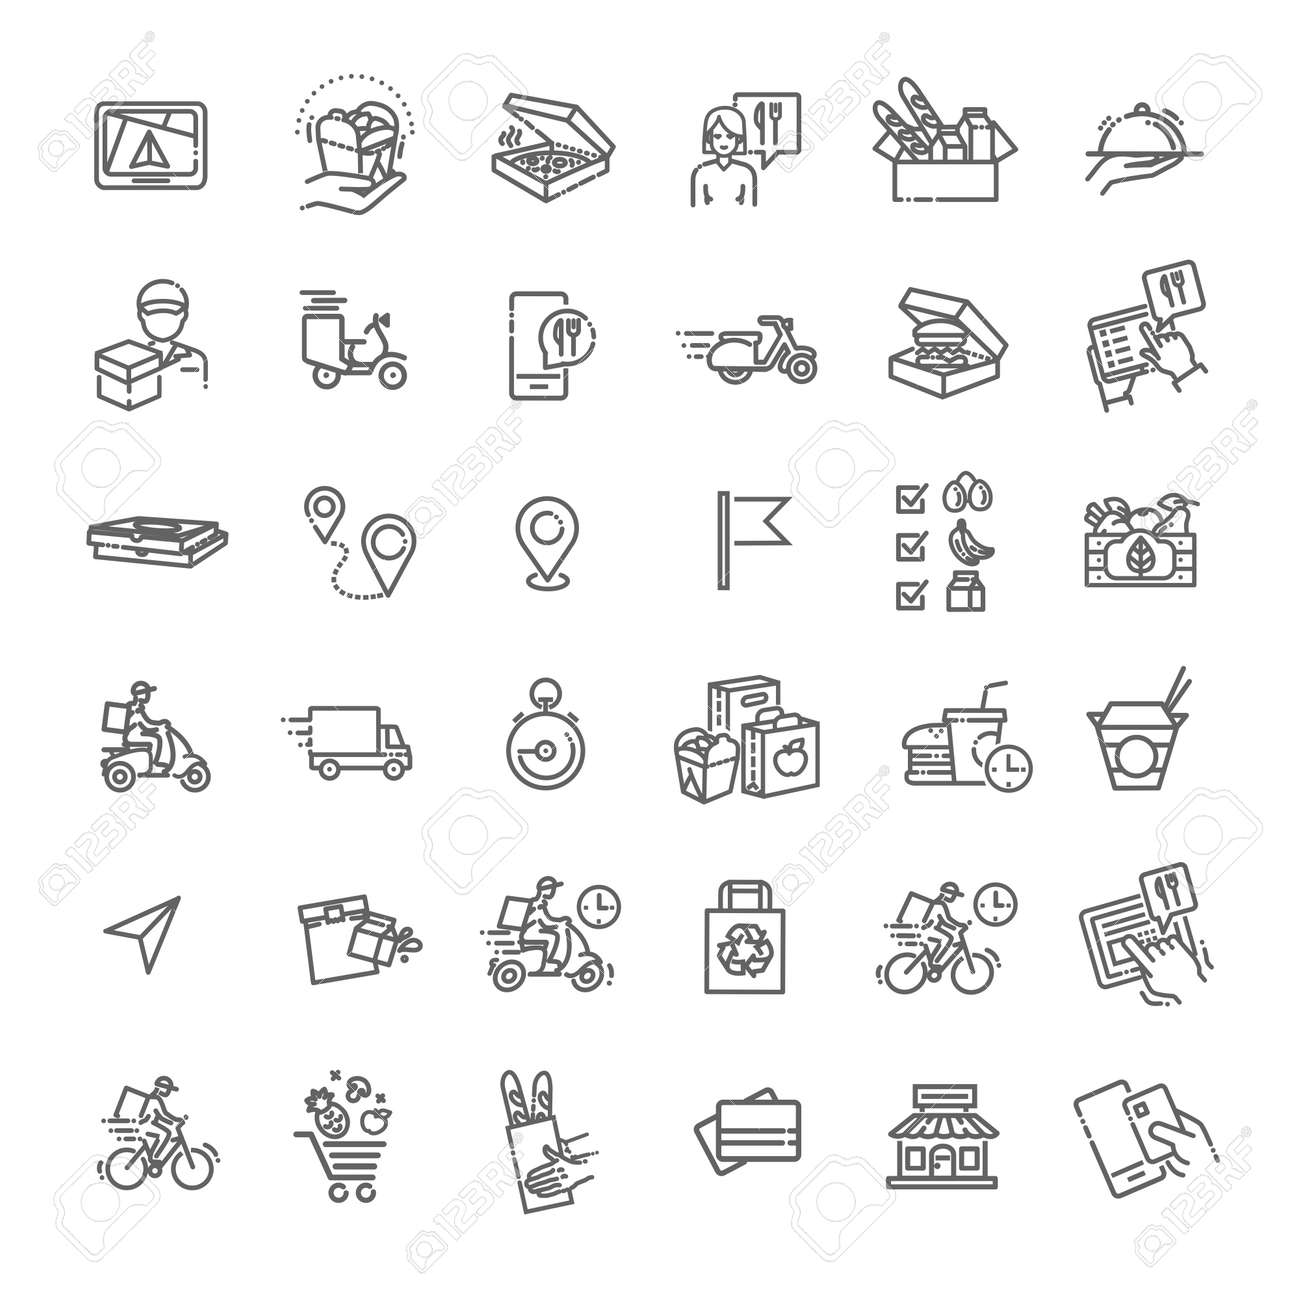 Set of Food Delivery Vector Line Icons - 169625708